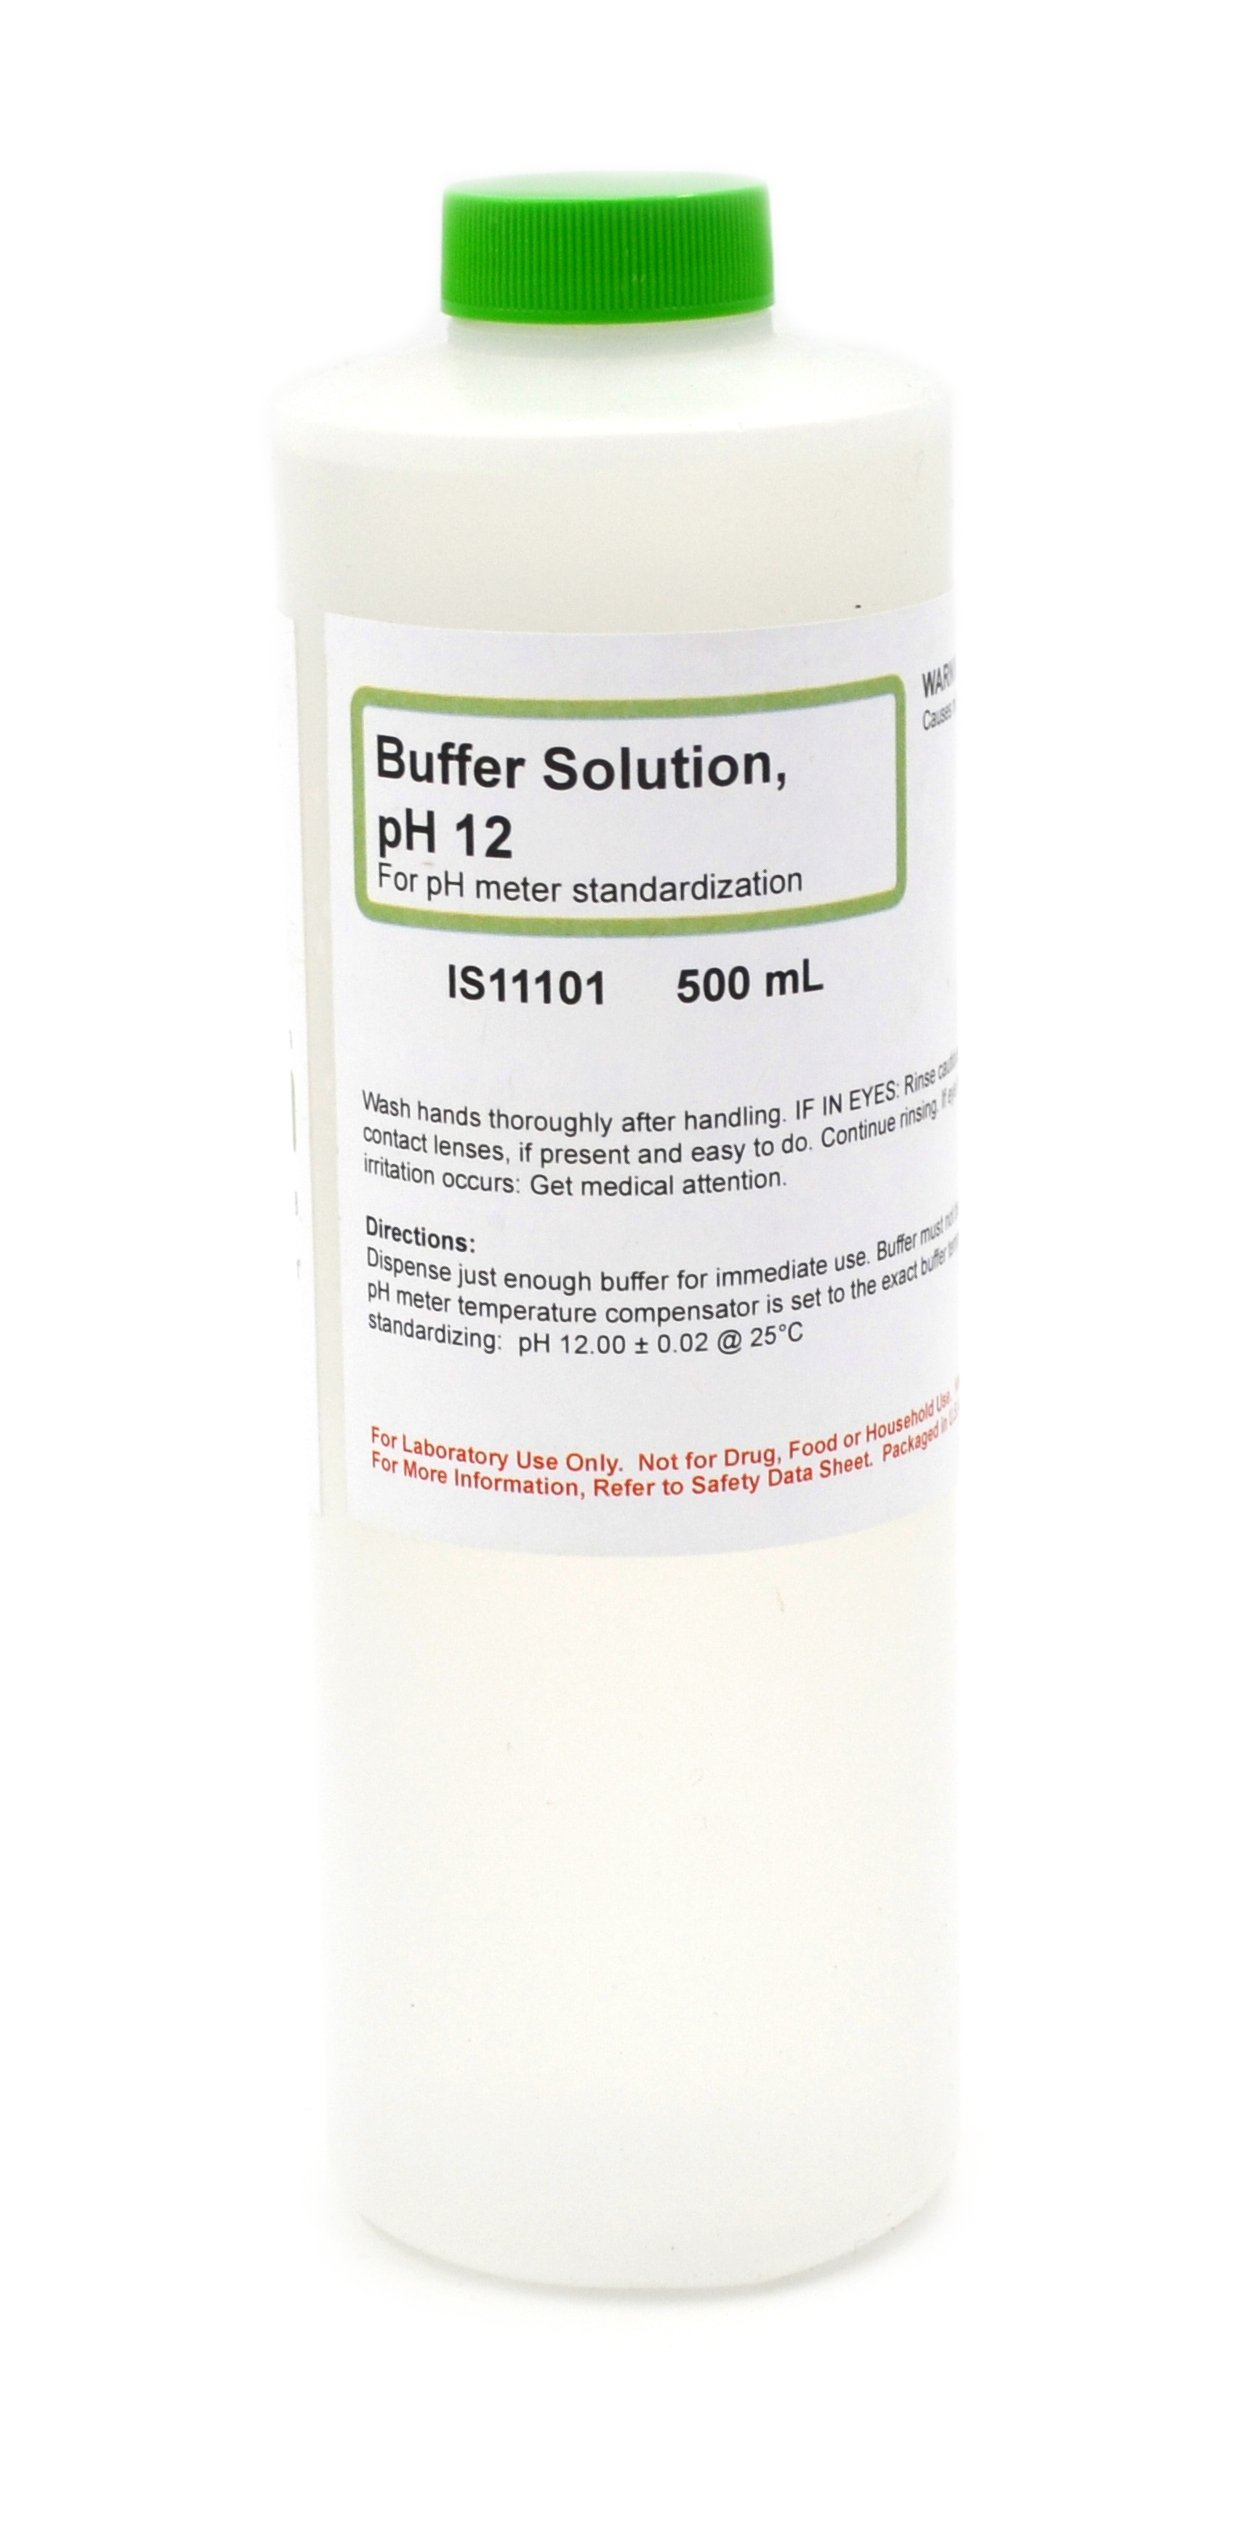 Standard Buffer Solution, pH 12, 500mL - The Curated Chemical Collection